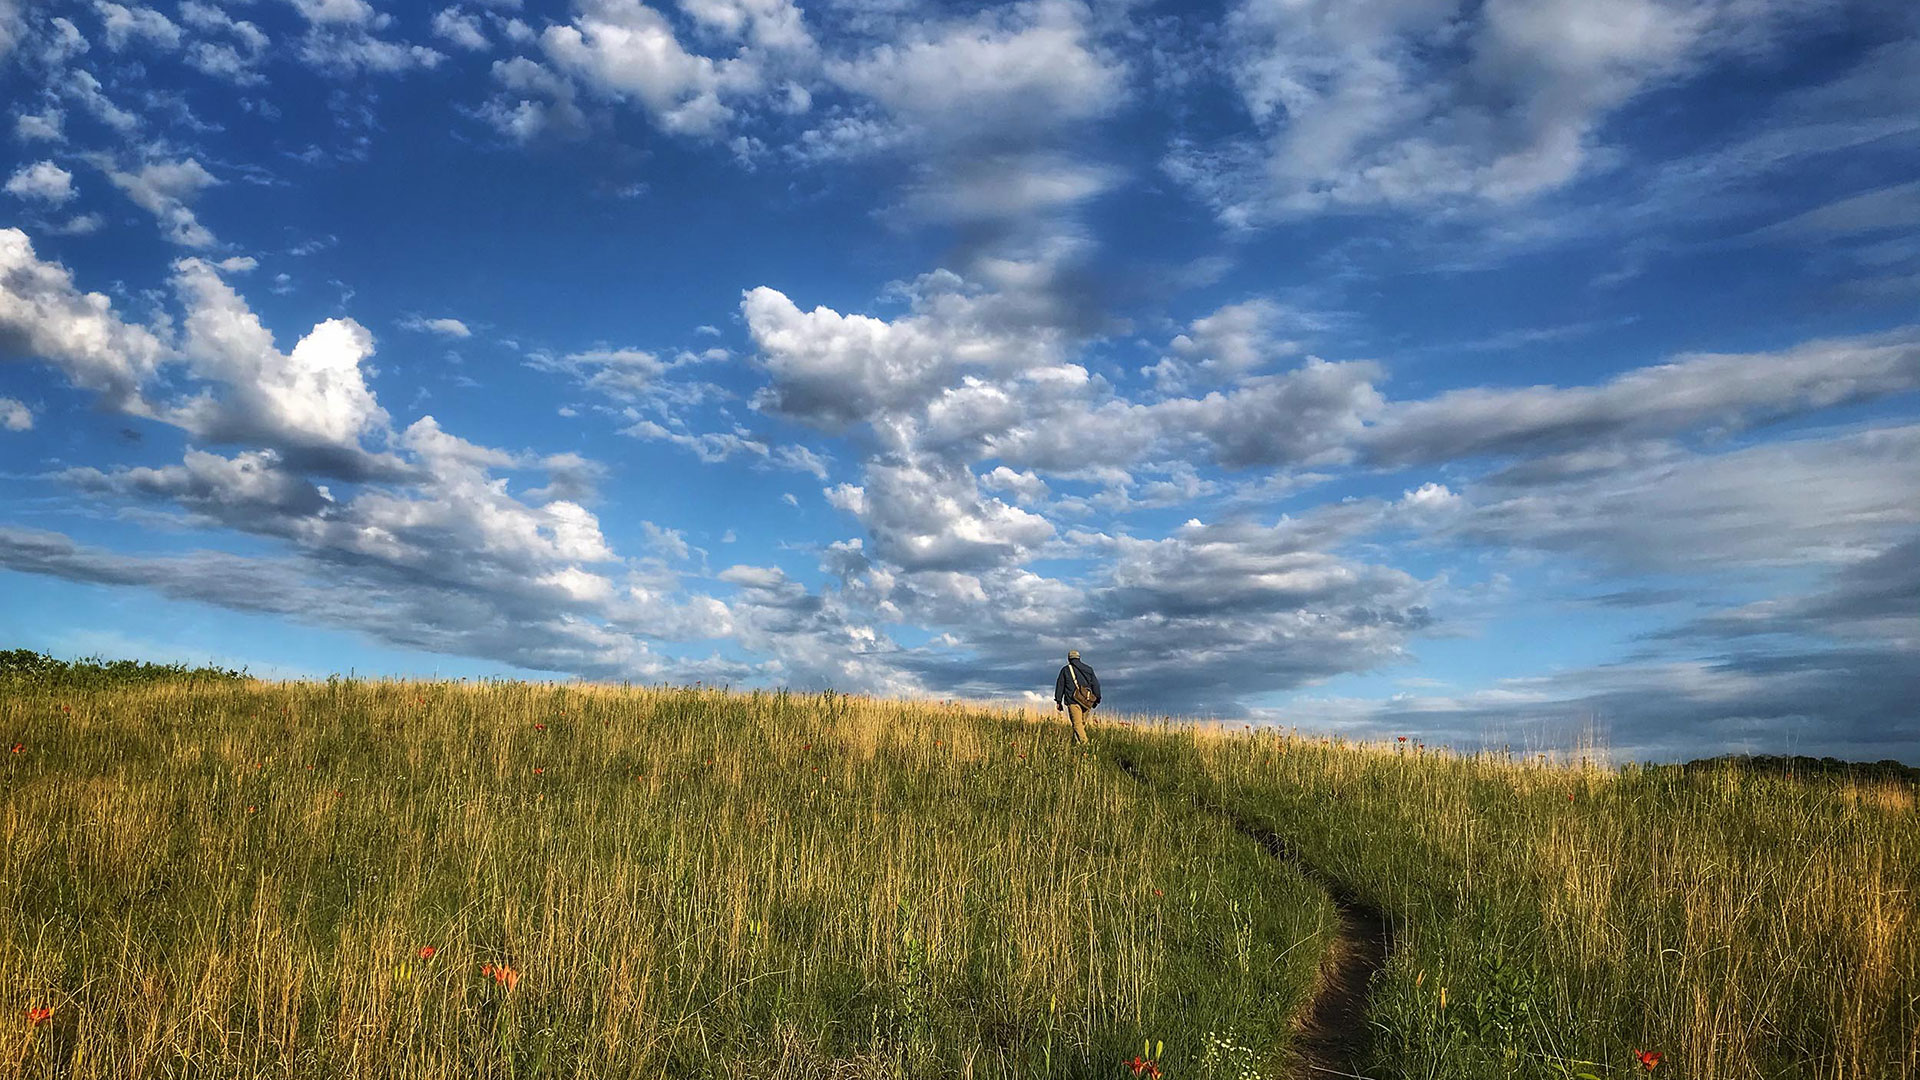 A man walks along a path through a hilly field with a stark blue sky and clouds